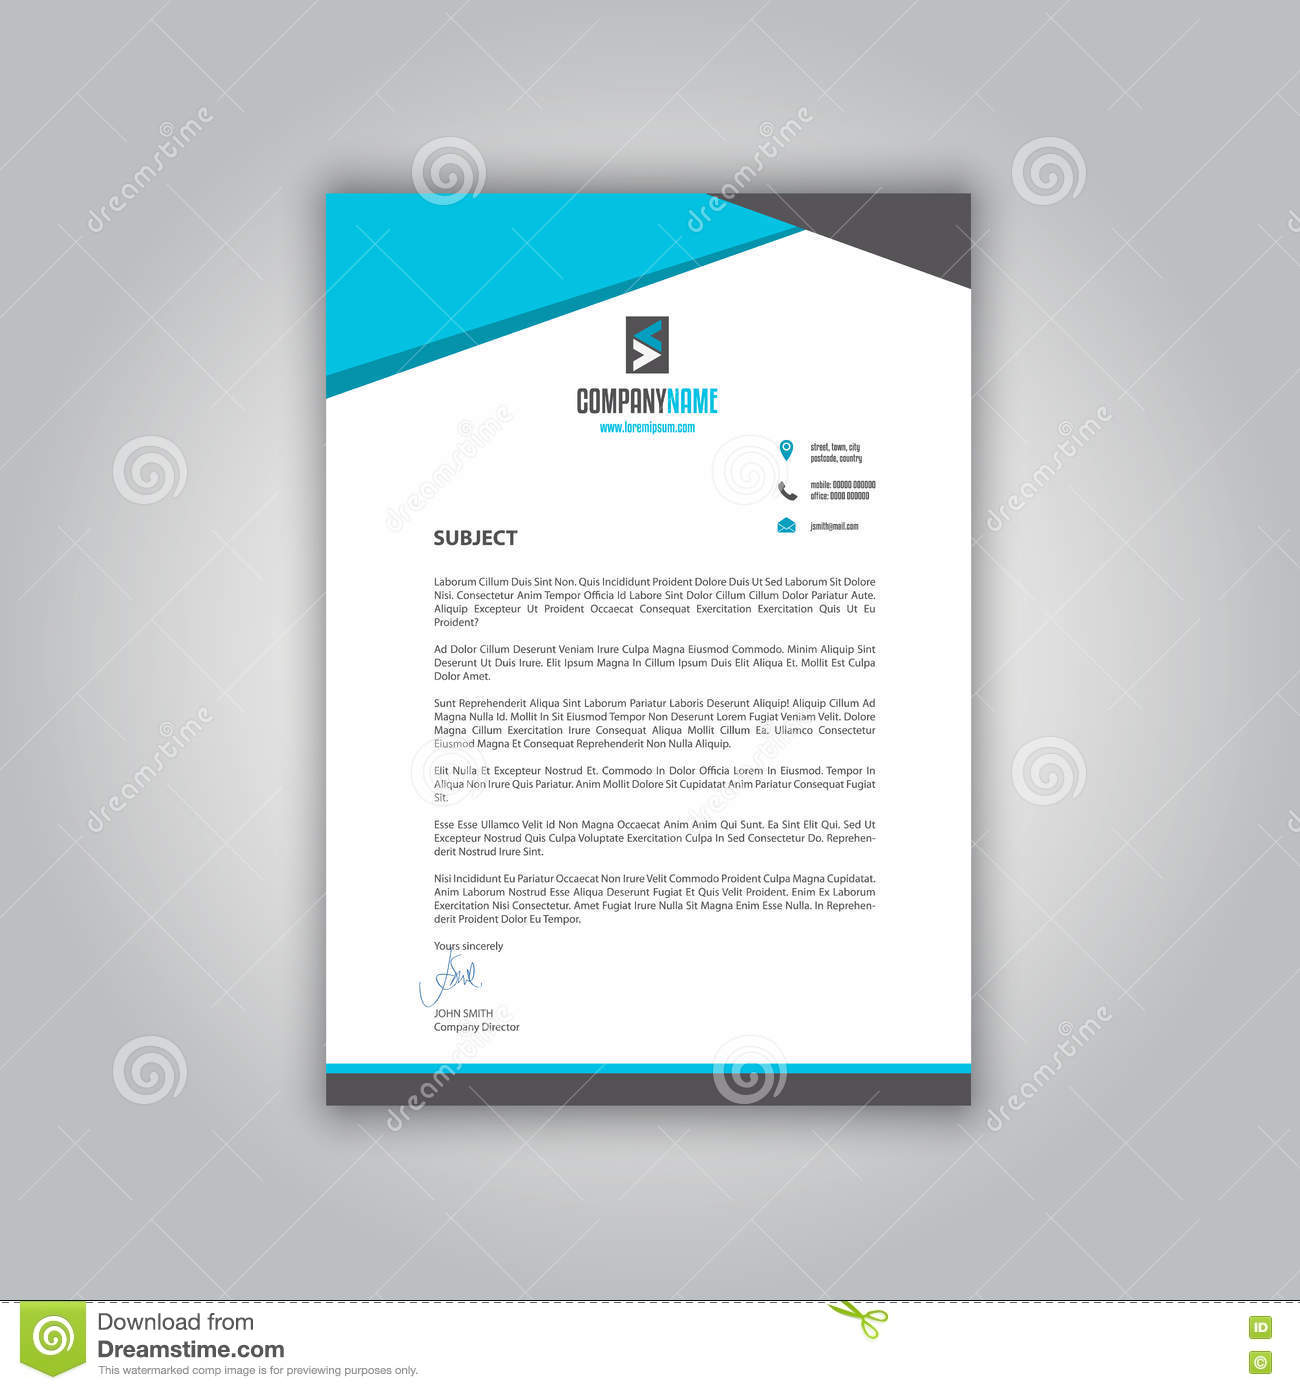 Business Letterhead Vector Image 77027859 – Business Letterhead